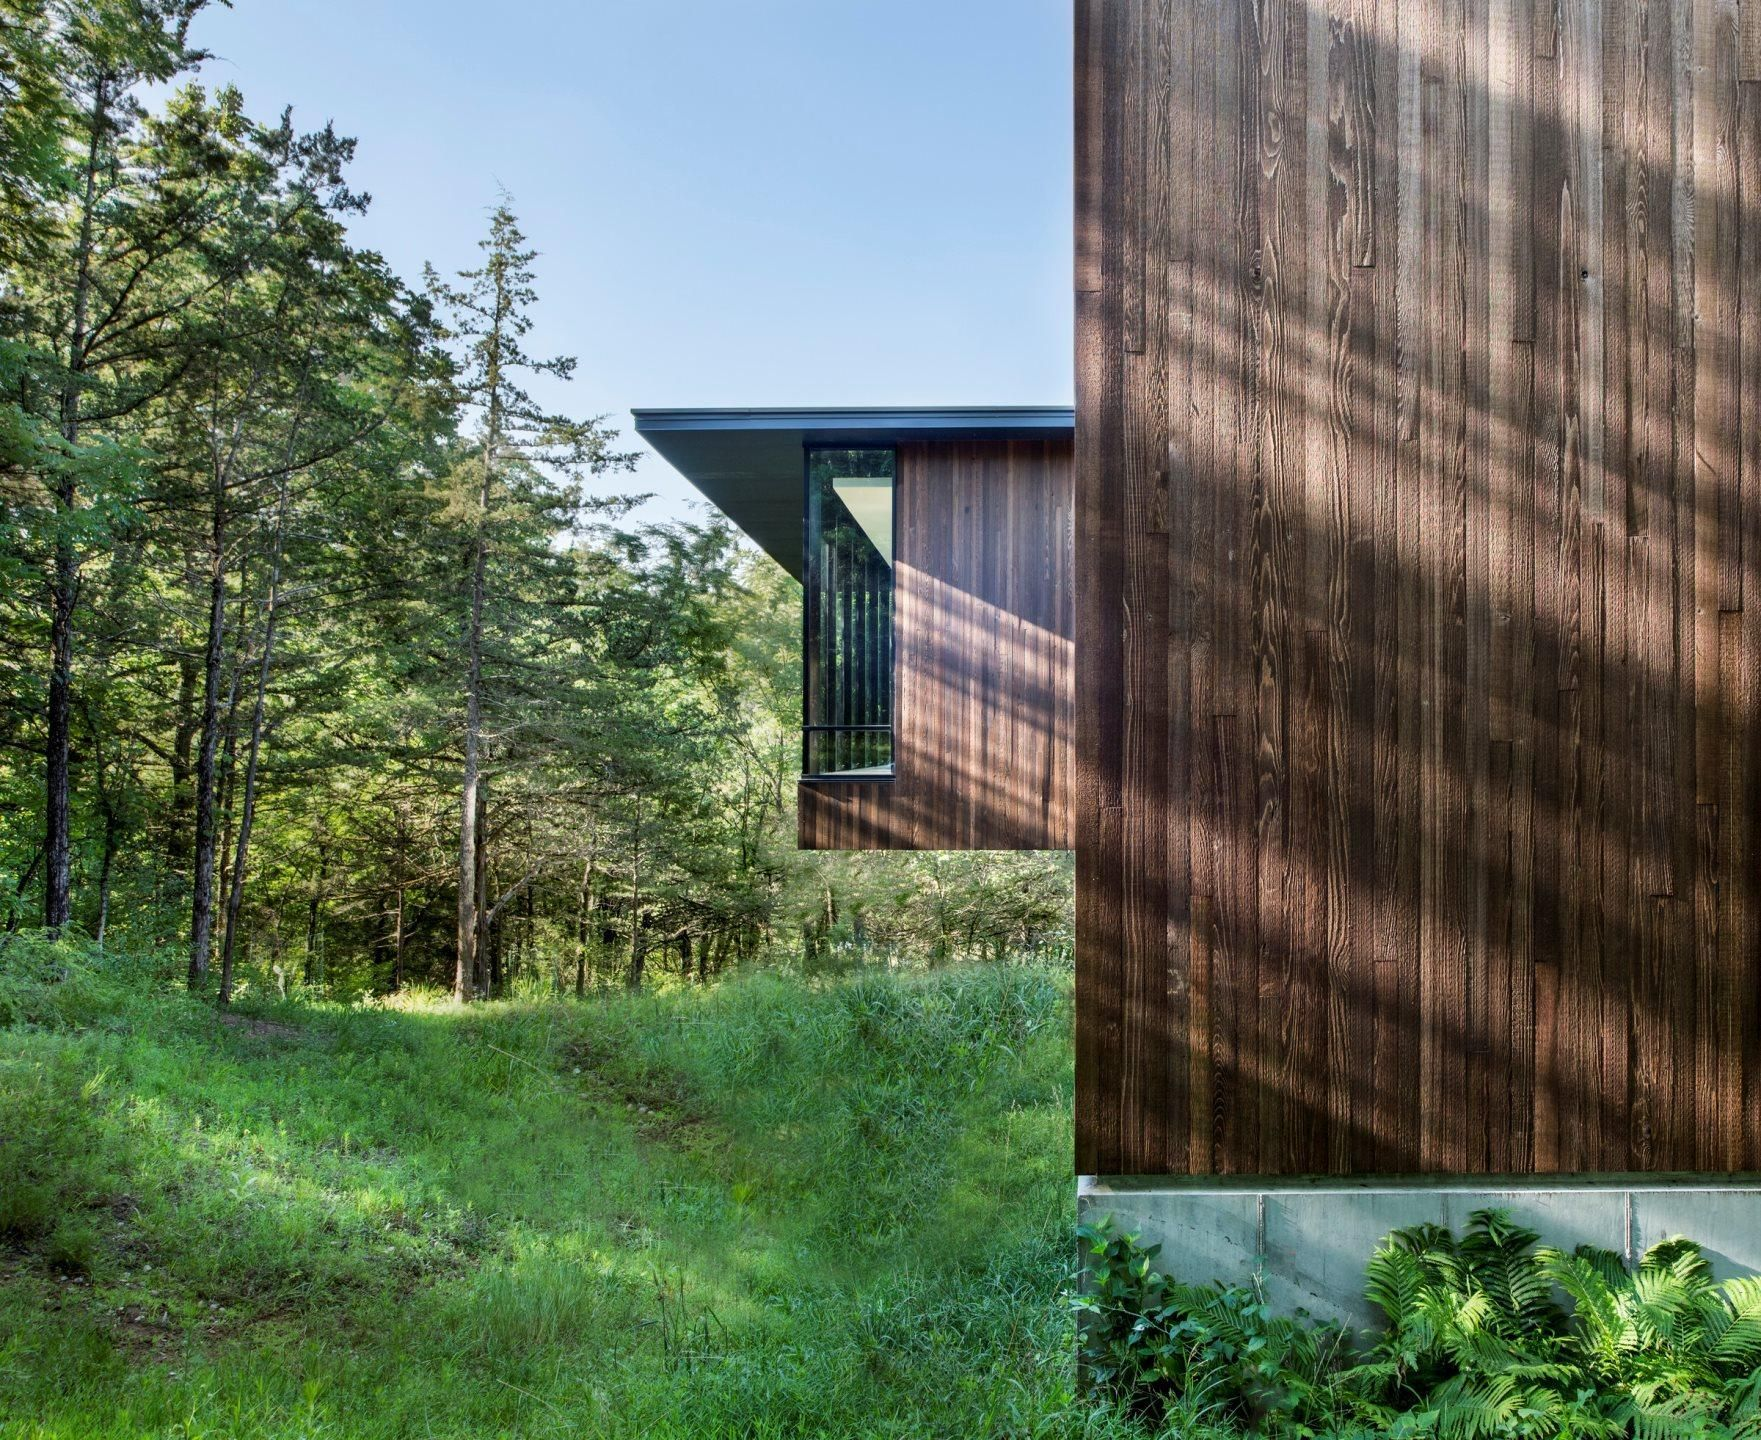 Weathered wood rainscreen system blends into the environment - BNIM #modernhouses #modernrustic #exteriordesign #archdaily #bestarchitecture